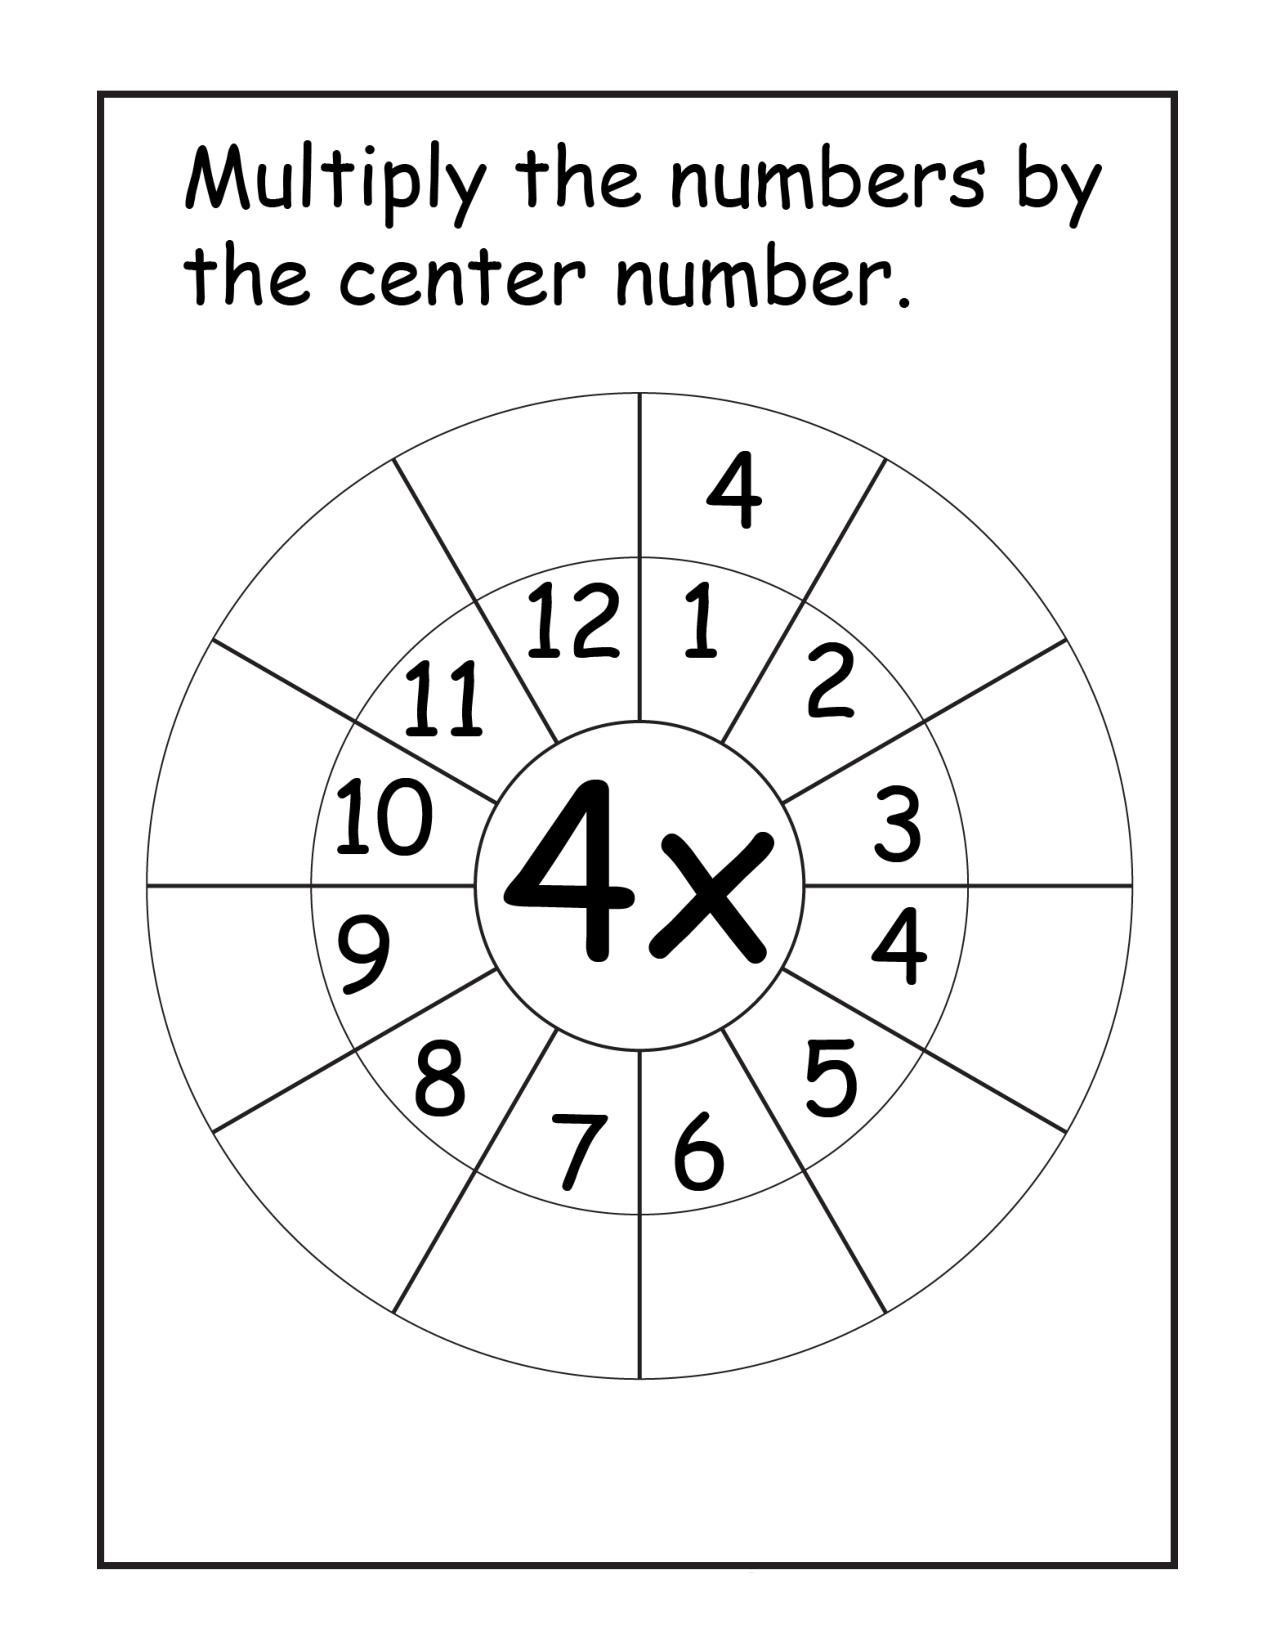 Polygons Worksheets 5th Grade Multiplication Worksheets Times Tables Speed Test Printable